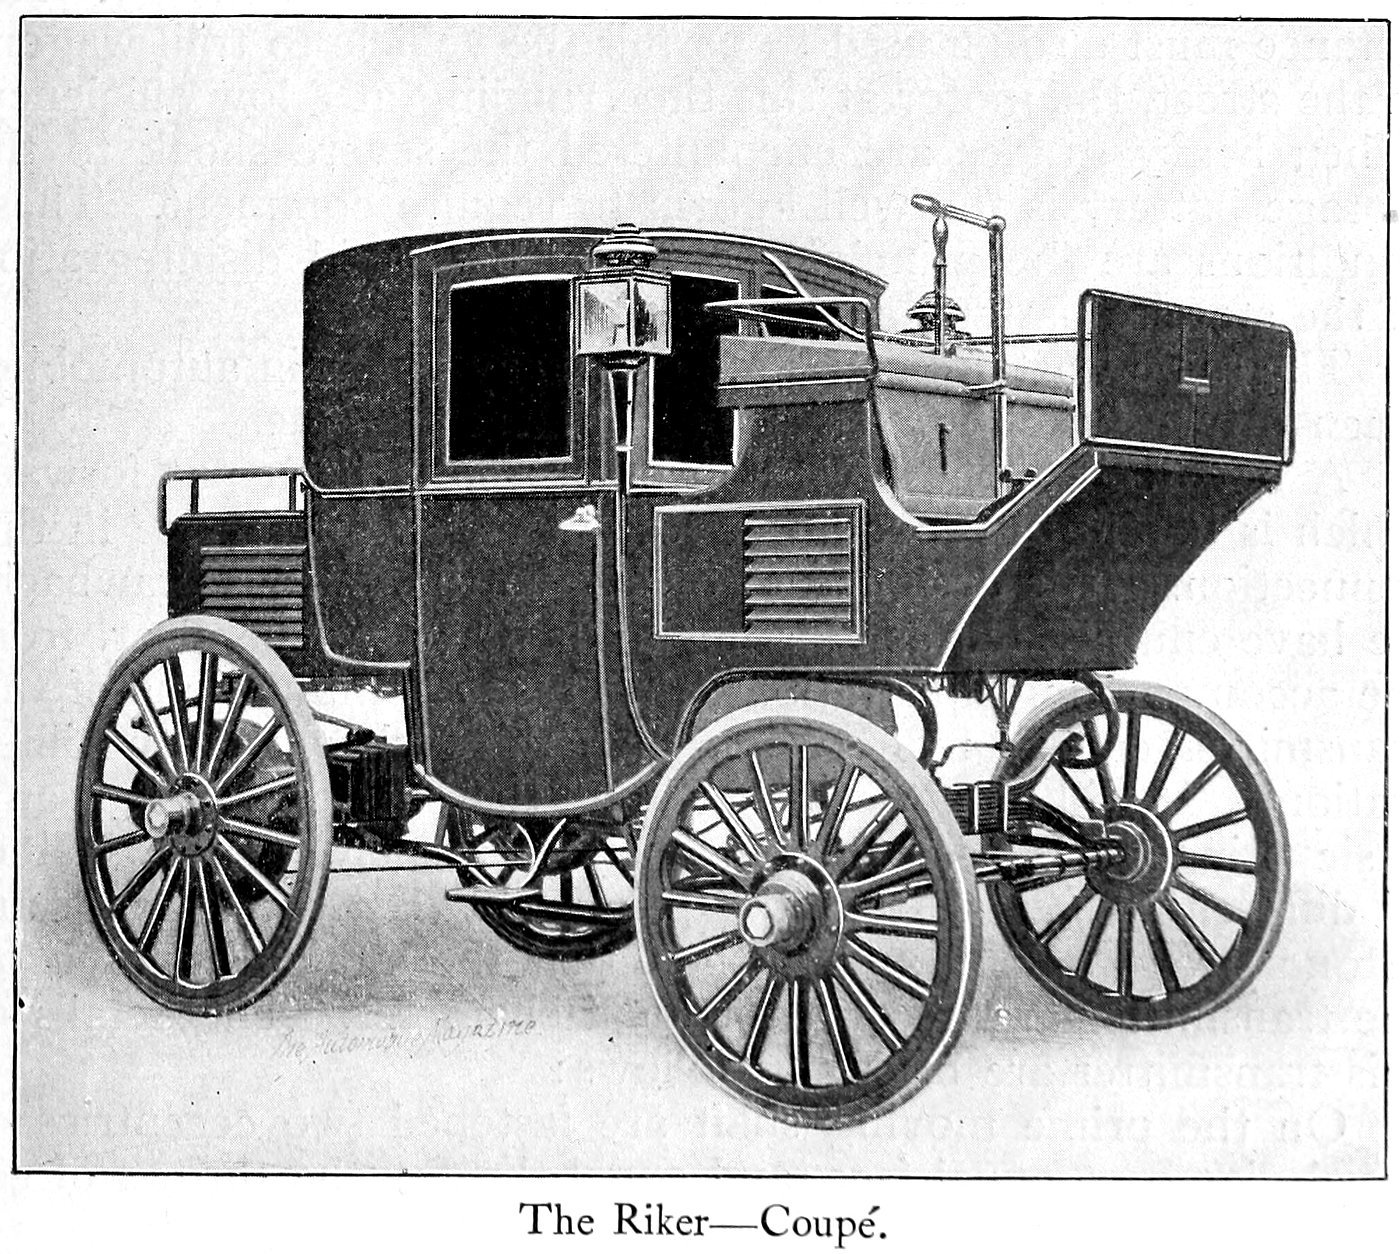 The Riker -- Coupe (1899)